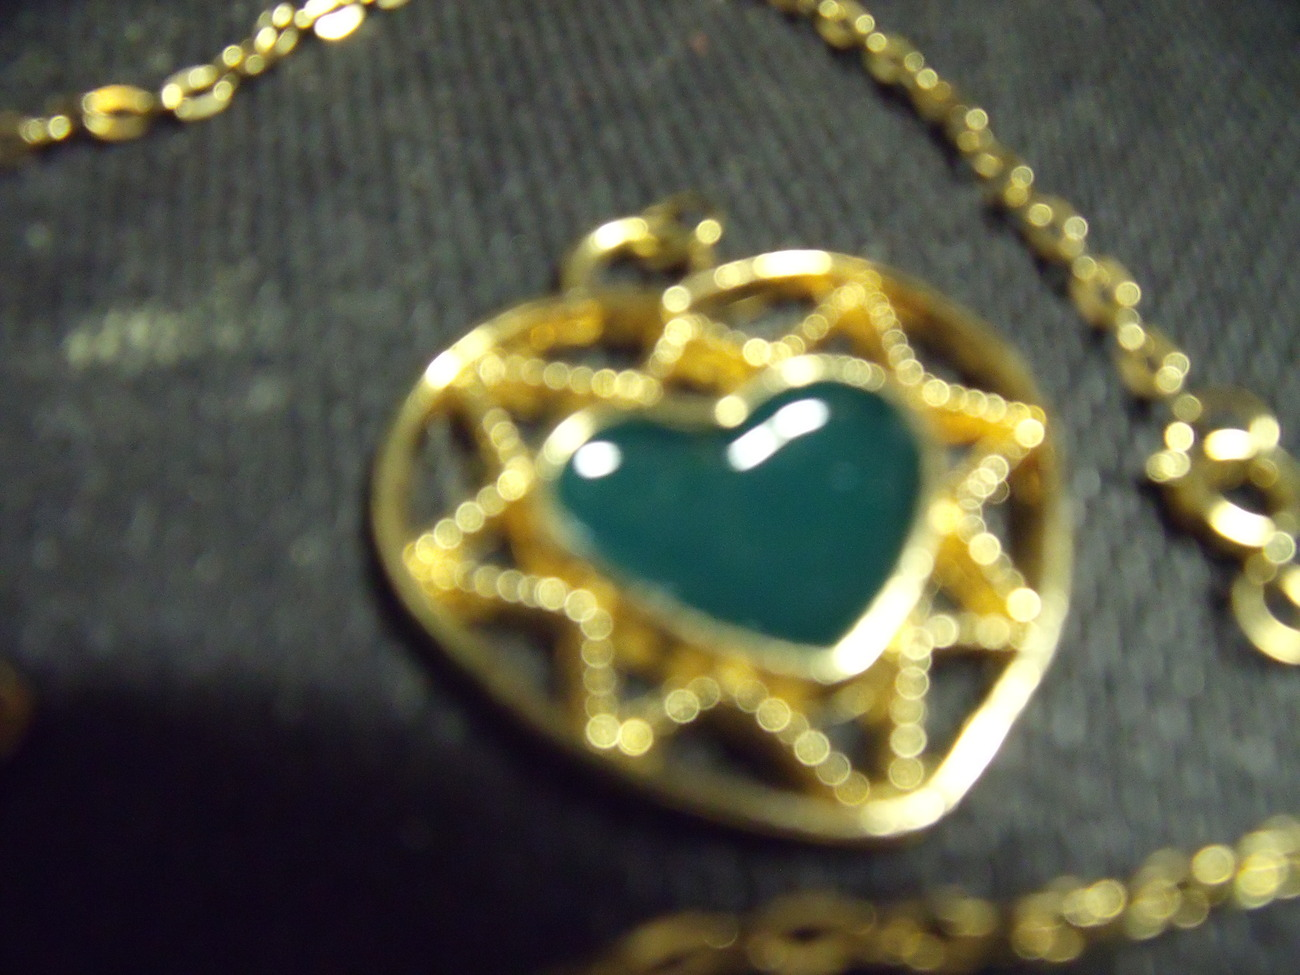 Vintage Golden Filigree Heart with Jade Heart Inset Pendant and Chain